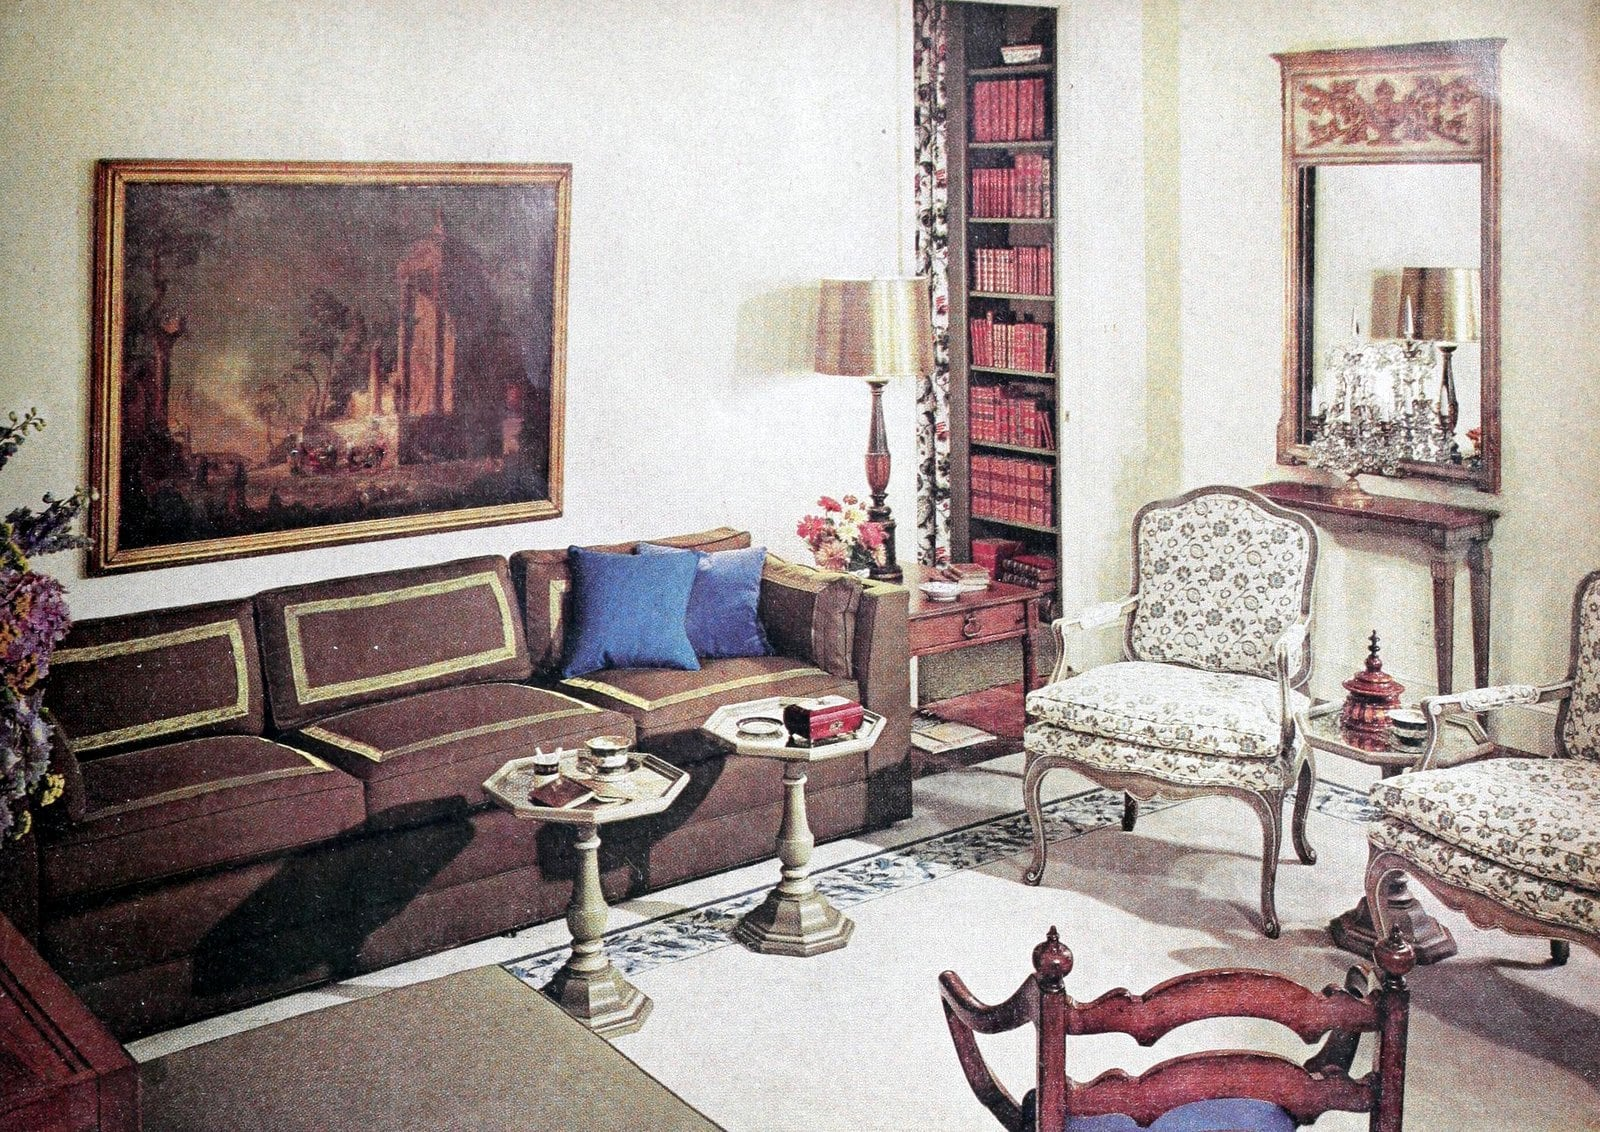 Traditional living room furnishings in a 1960s home